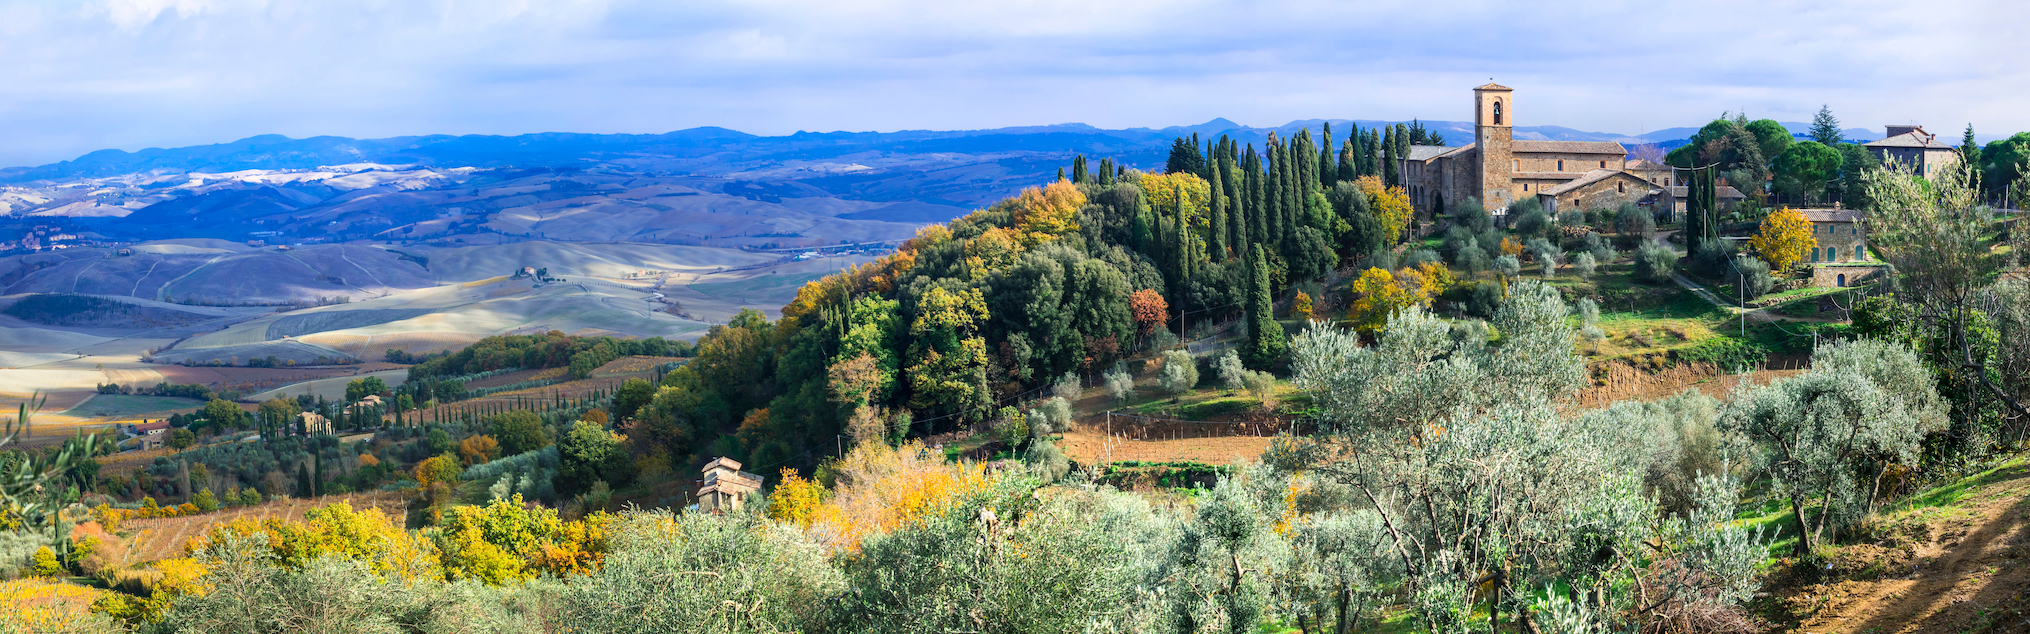 The Best Vintages Of Brunello di Montalcino To Add To Your Cellar